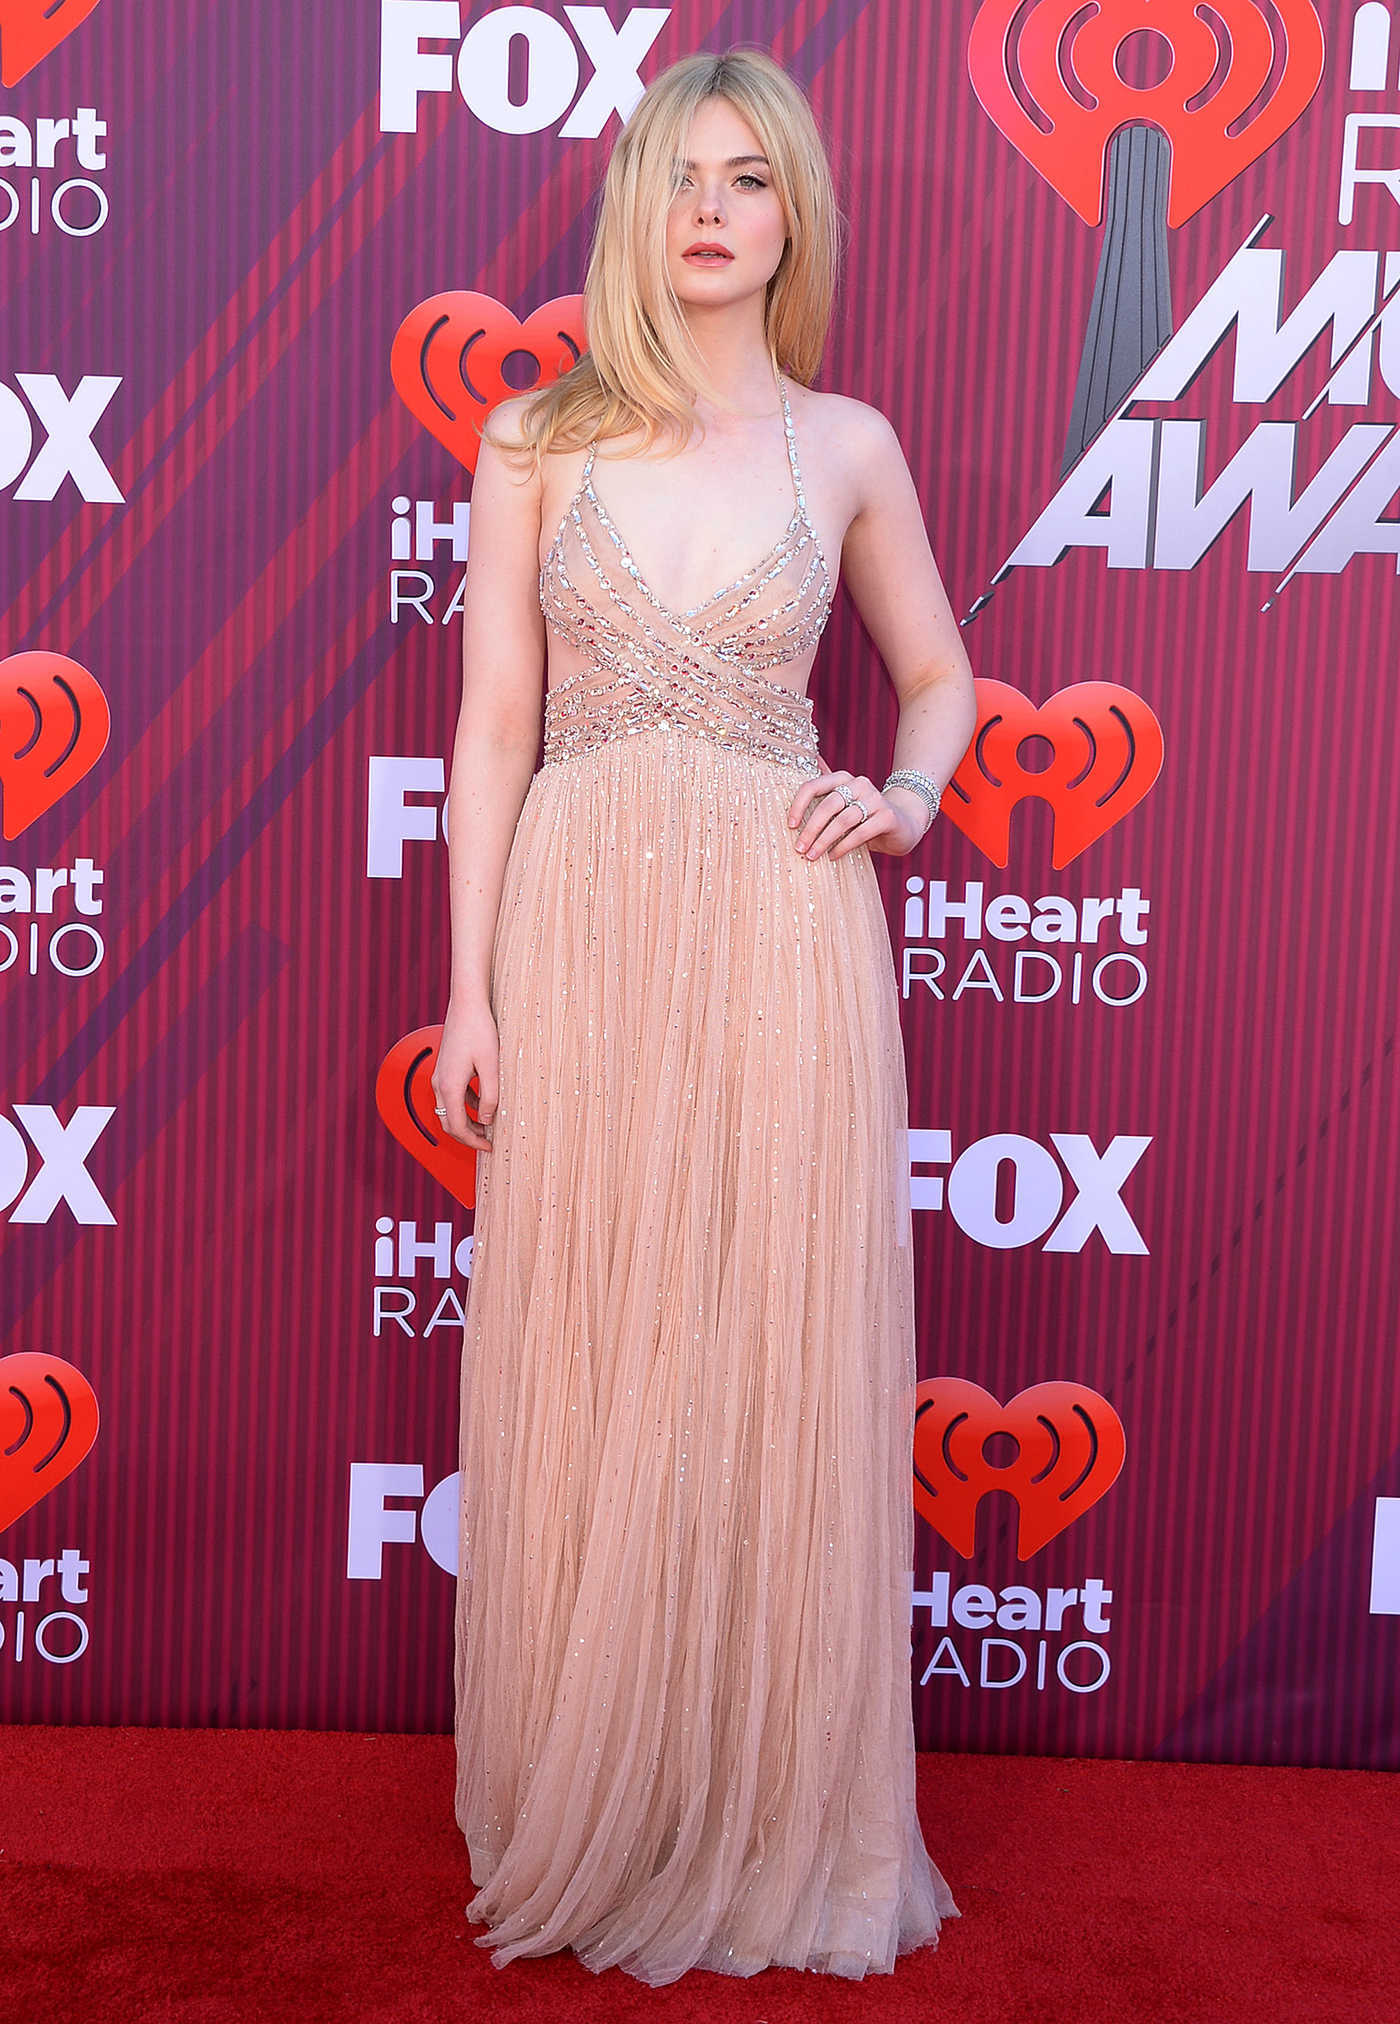 Elle Fanning Attends 2019 iHeartRadio Music Awards at Microsoft Theater in LA 03/14/2019